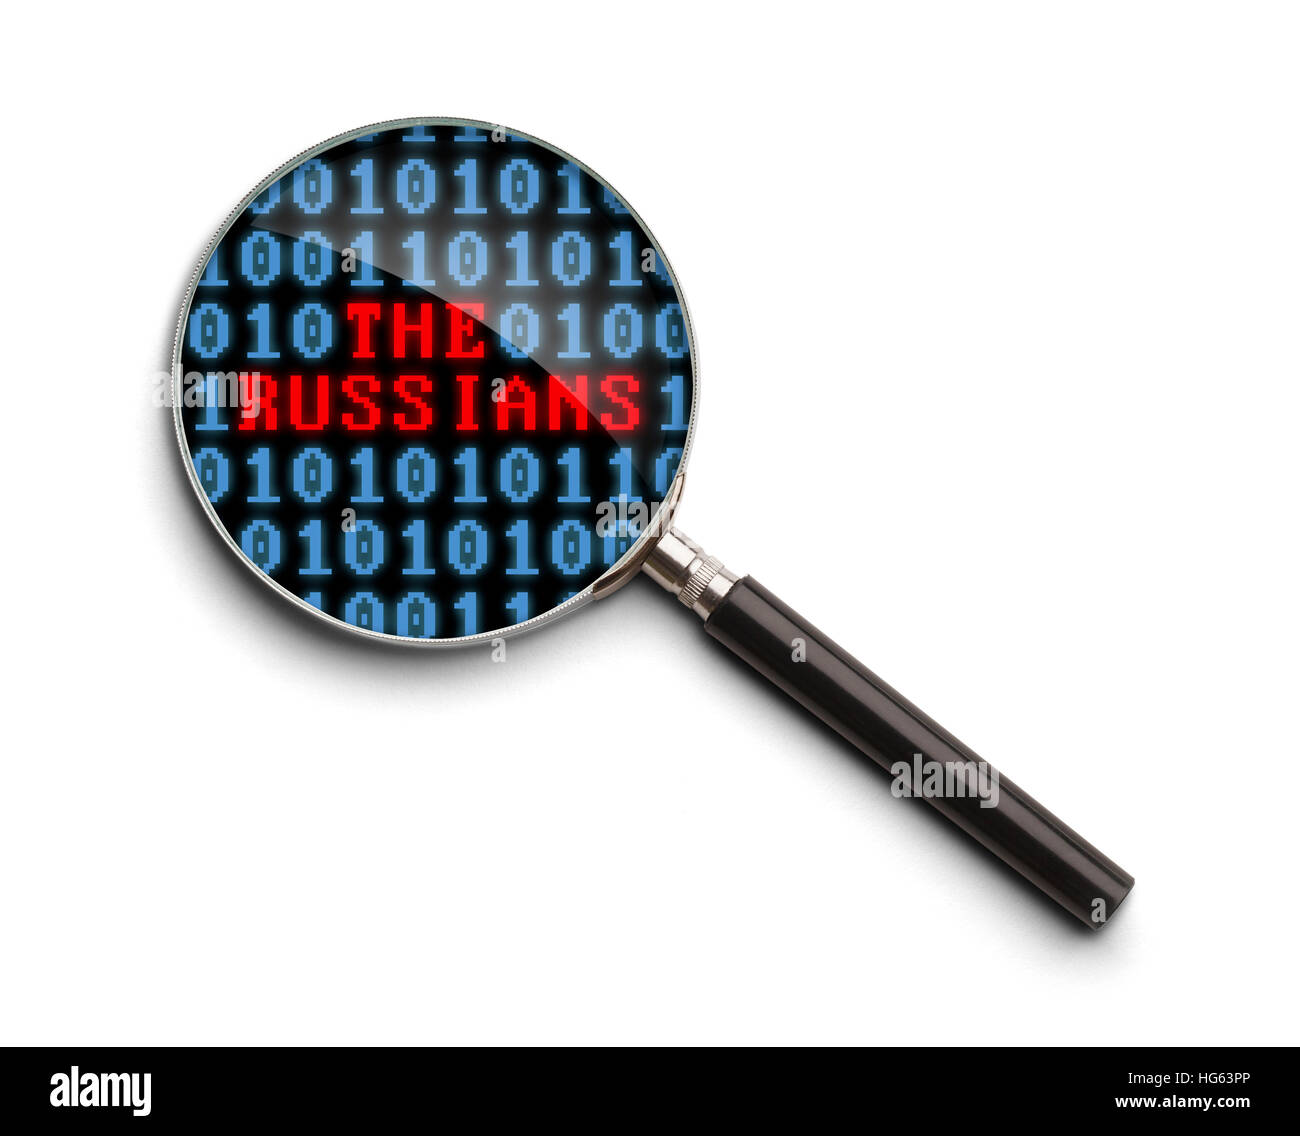 Computer Code with The Russians Magnifying Glass Isolated on a White Background. - Stock Image